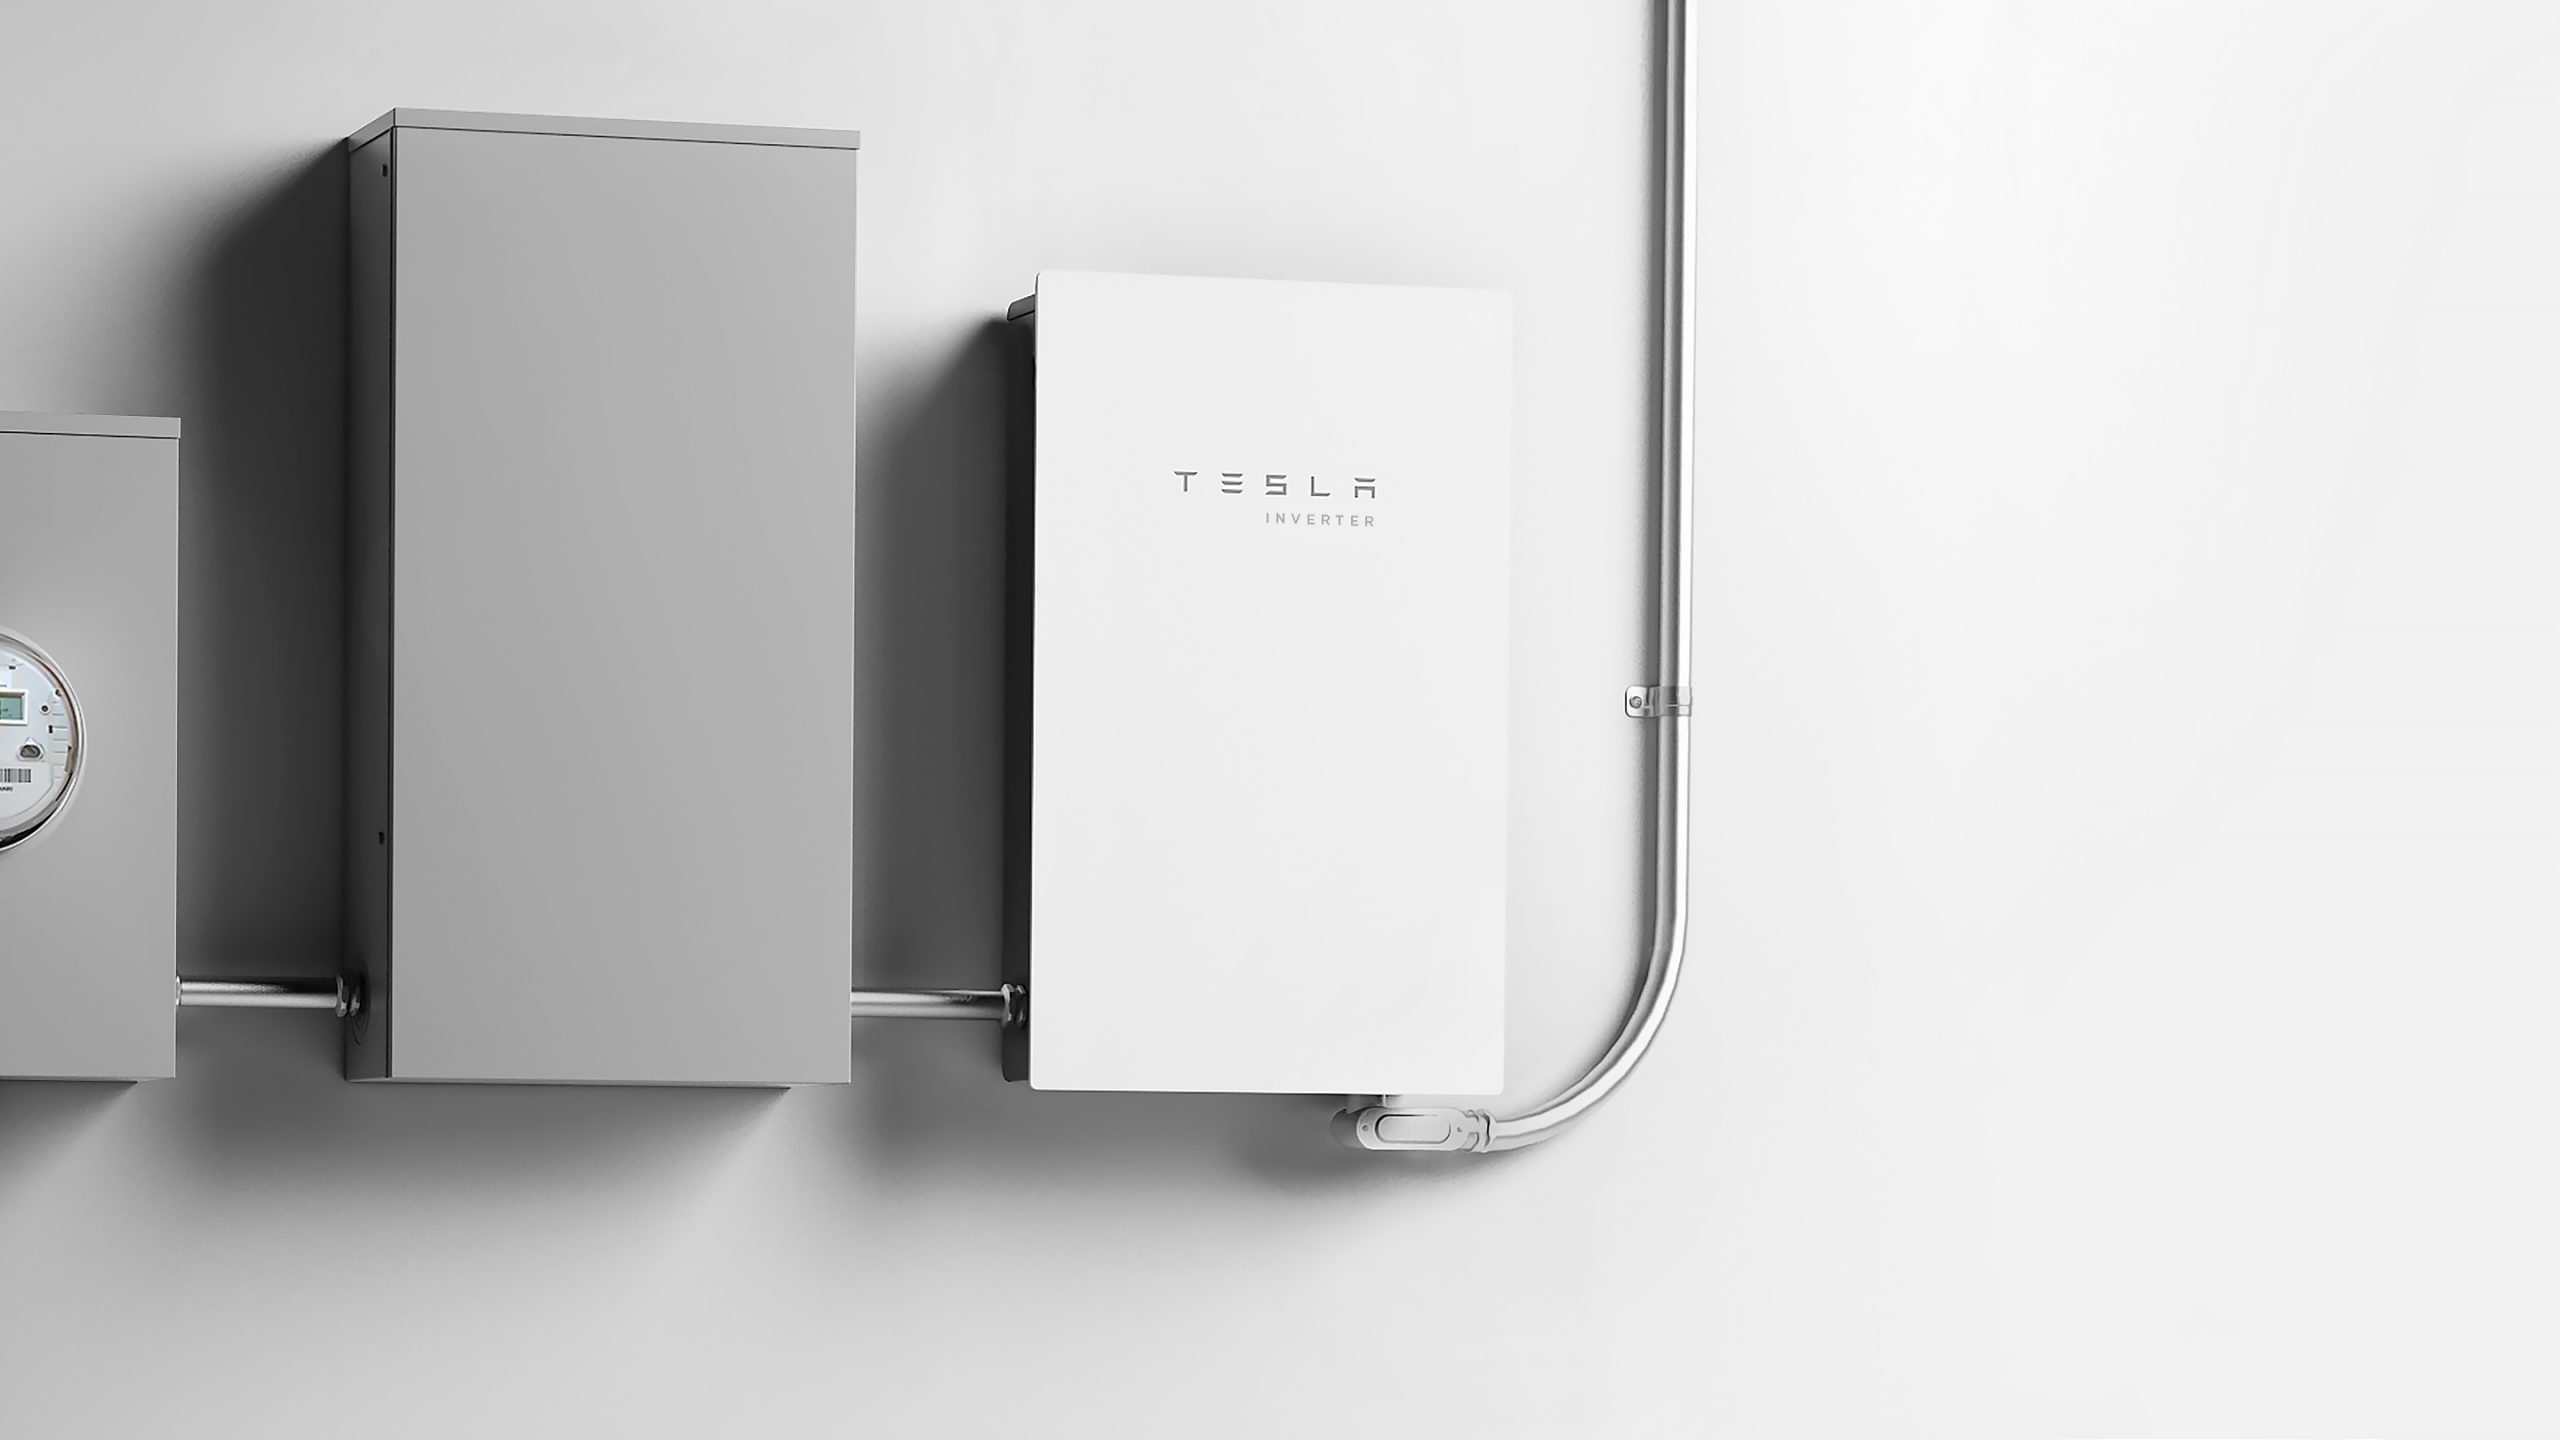 Tesla is now offering its own Solar Inverter